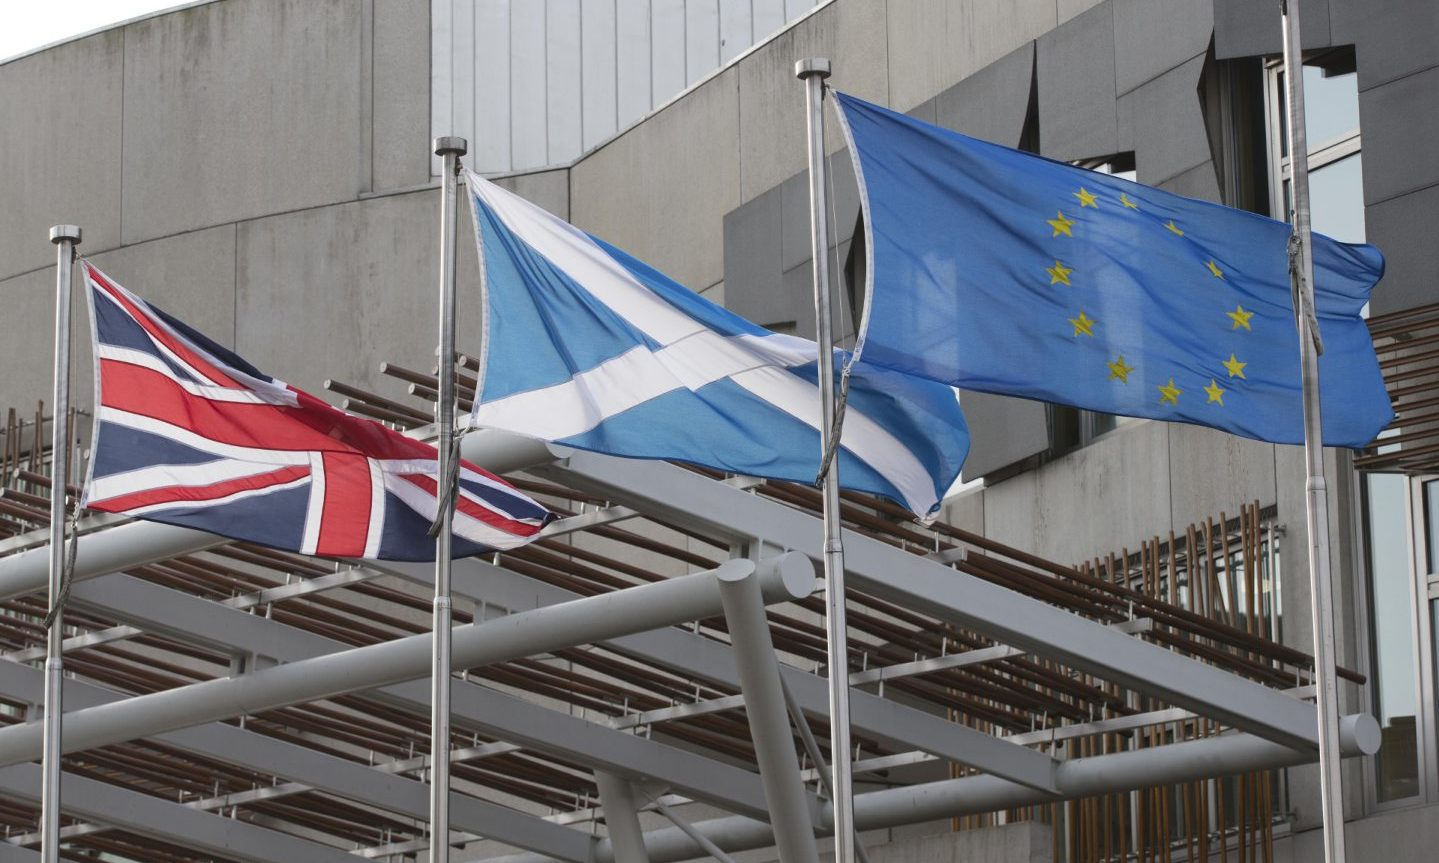 The flags of the United Kingdom, Scotland and the European Union outside The Scottish Parliament building.